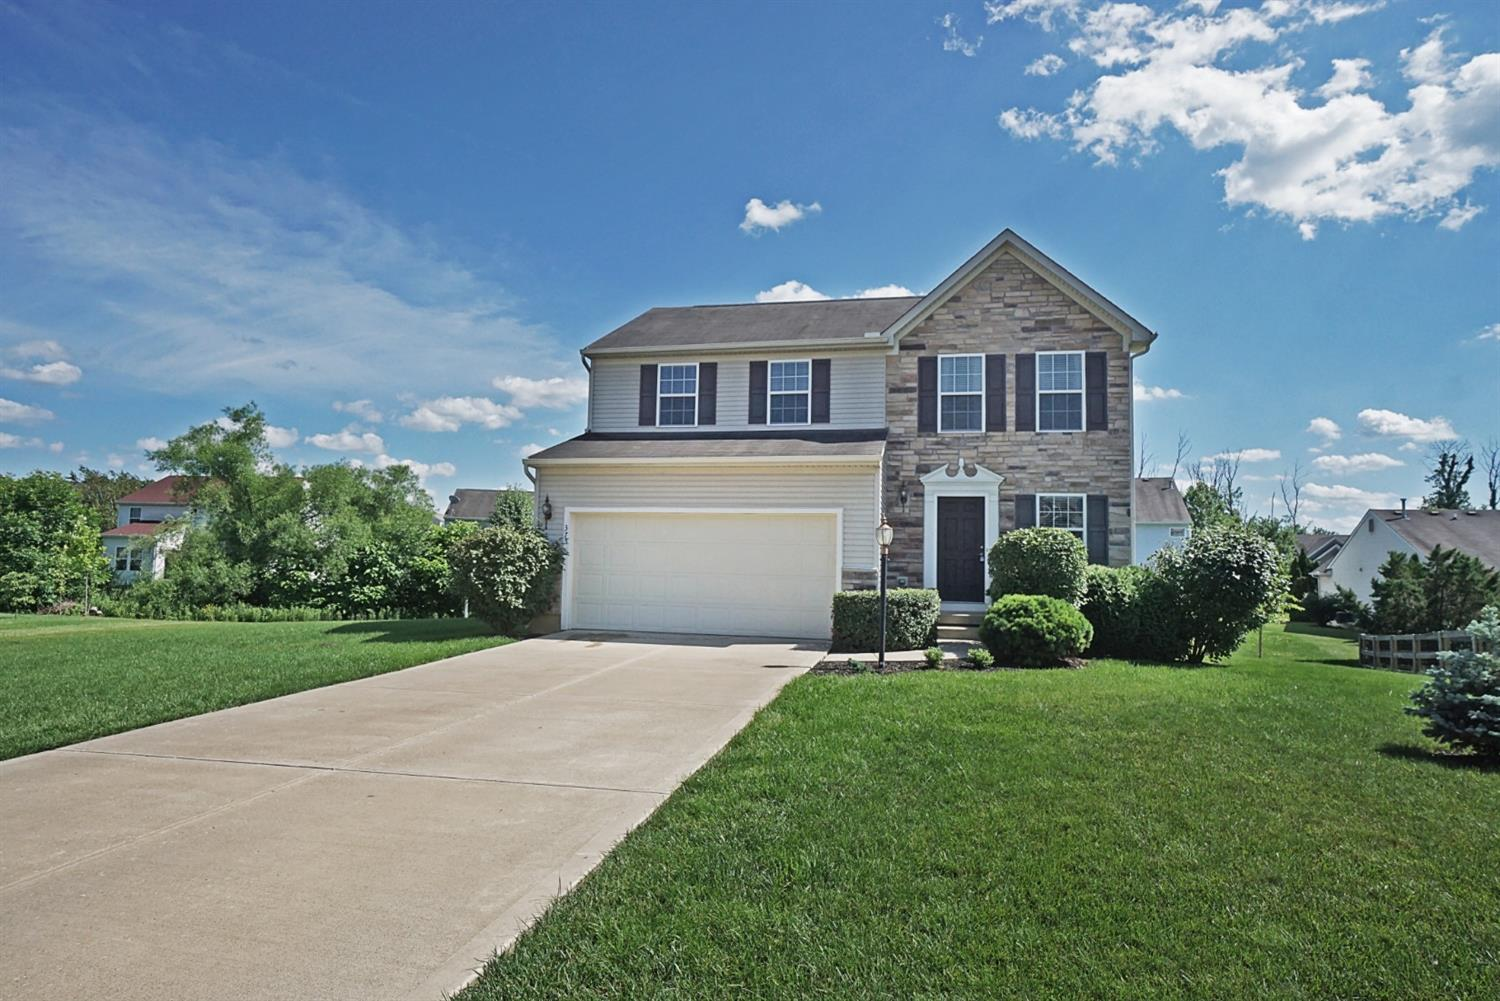 Property for sale at 375 Derby Court, Lebanon,  Ohio 45036